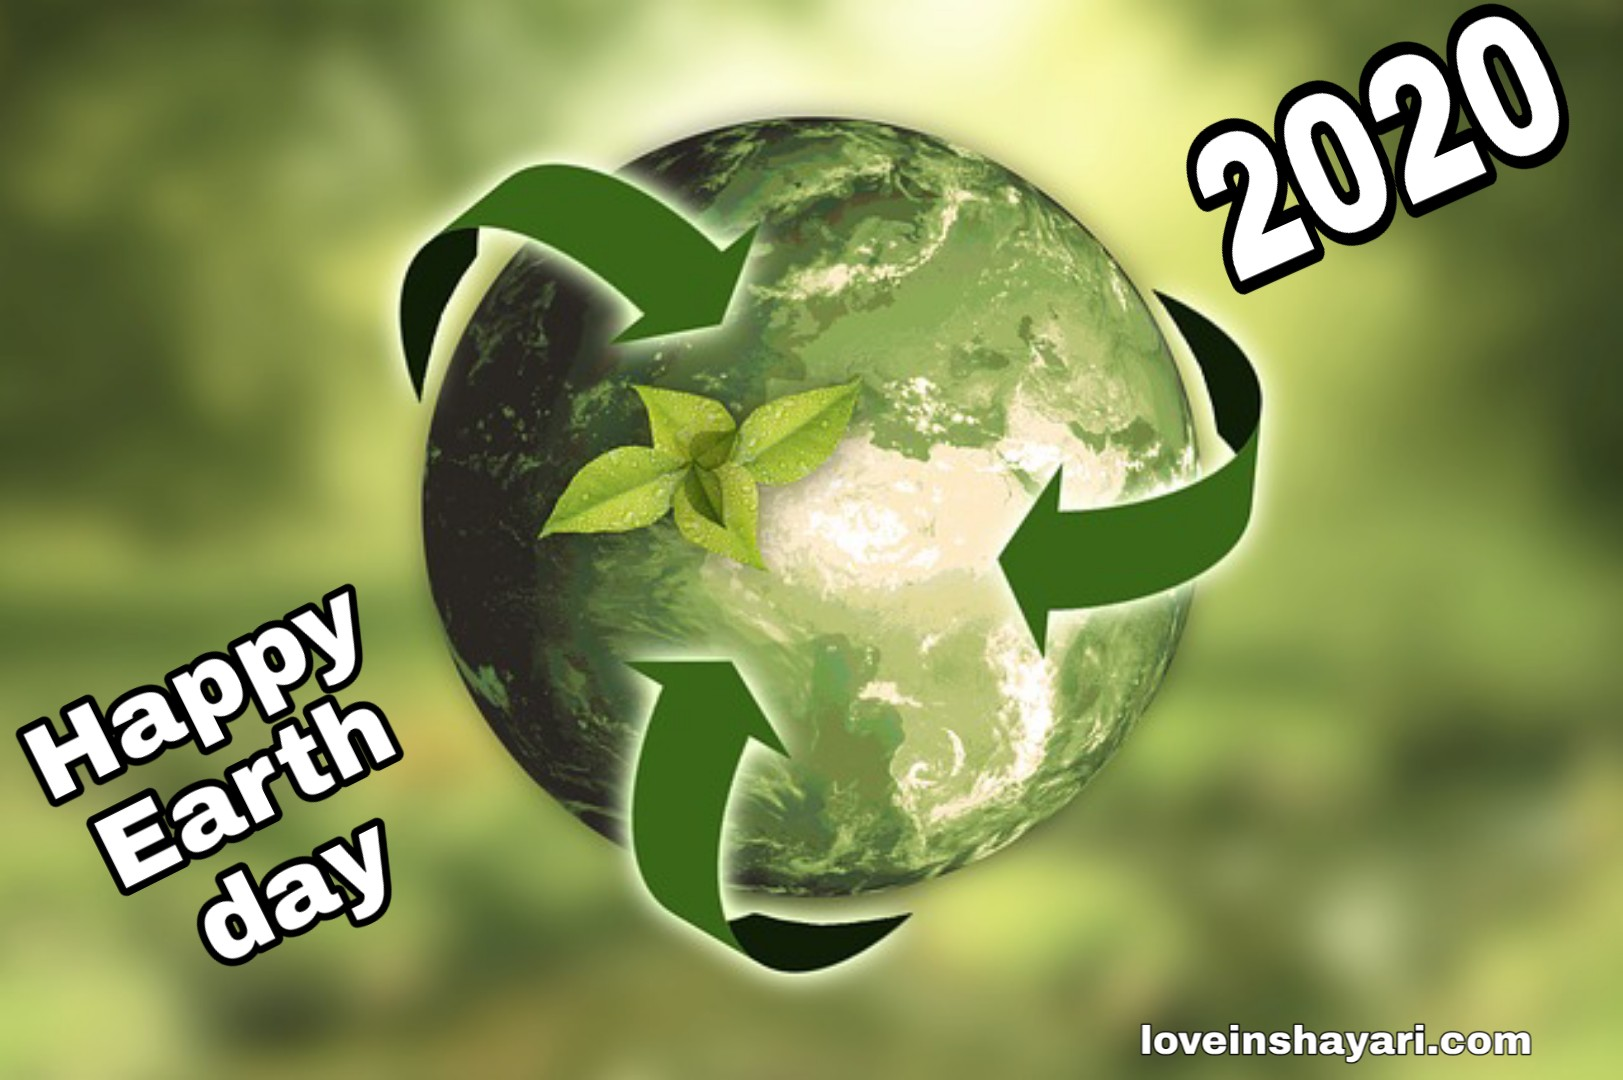 Photo of Earth day images 2020 hd